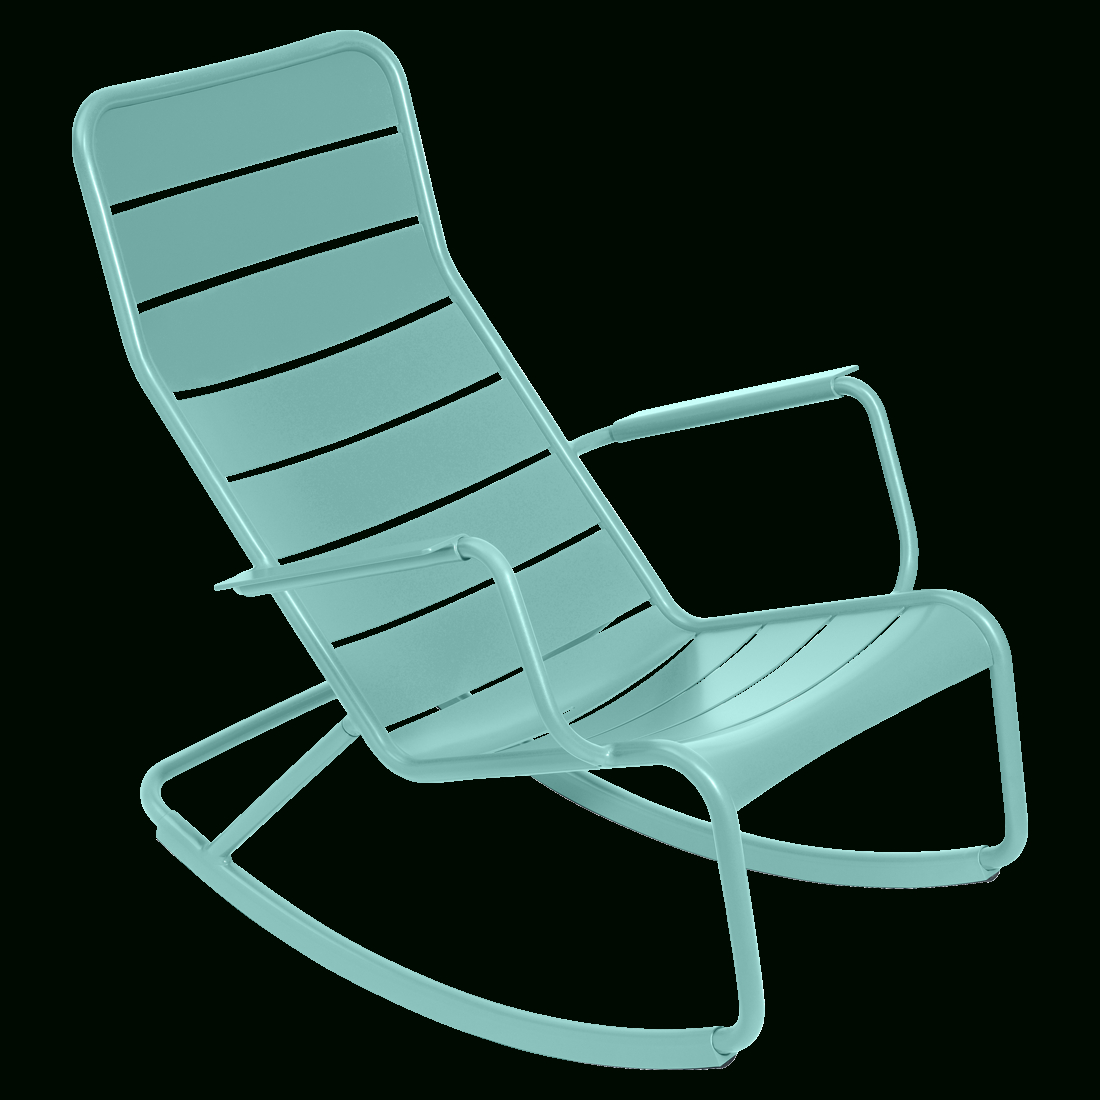 Luxembourg Rocking Chair For Outdoor Living Space avec Rocking Chair De Jardin